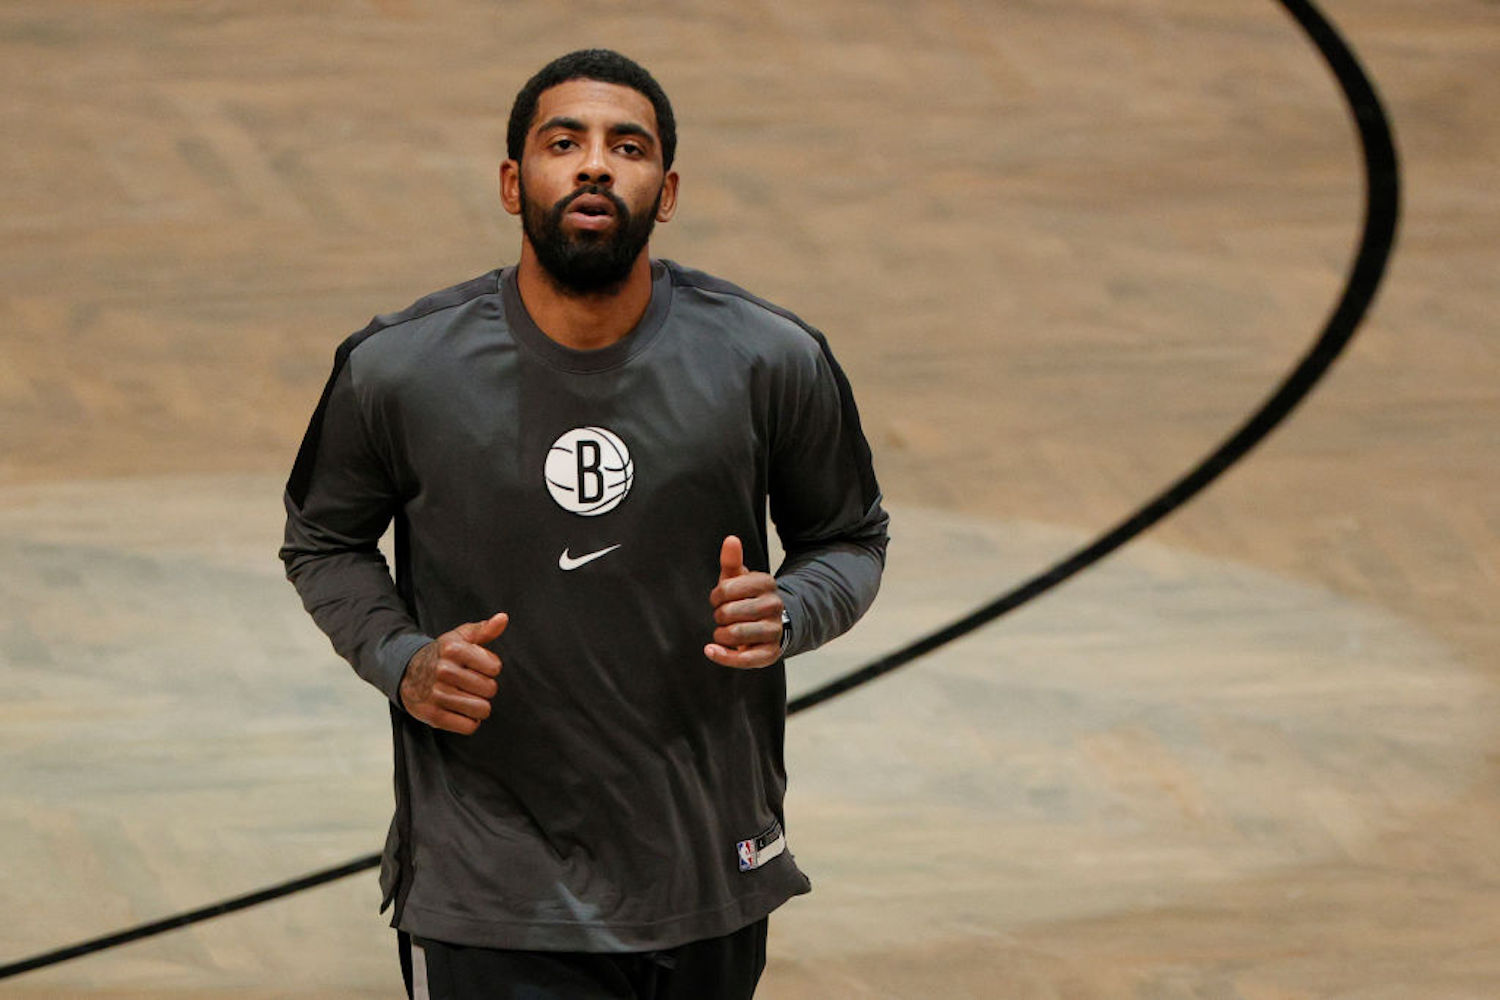 Kyrie Irving recently took a hiatus from the Brooklyn Nets for what he called 'personal reasons,' but it turns out he just wanted to party.